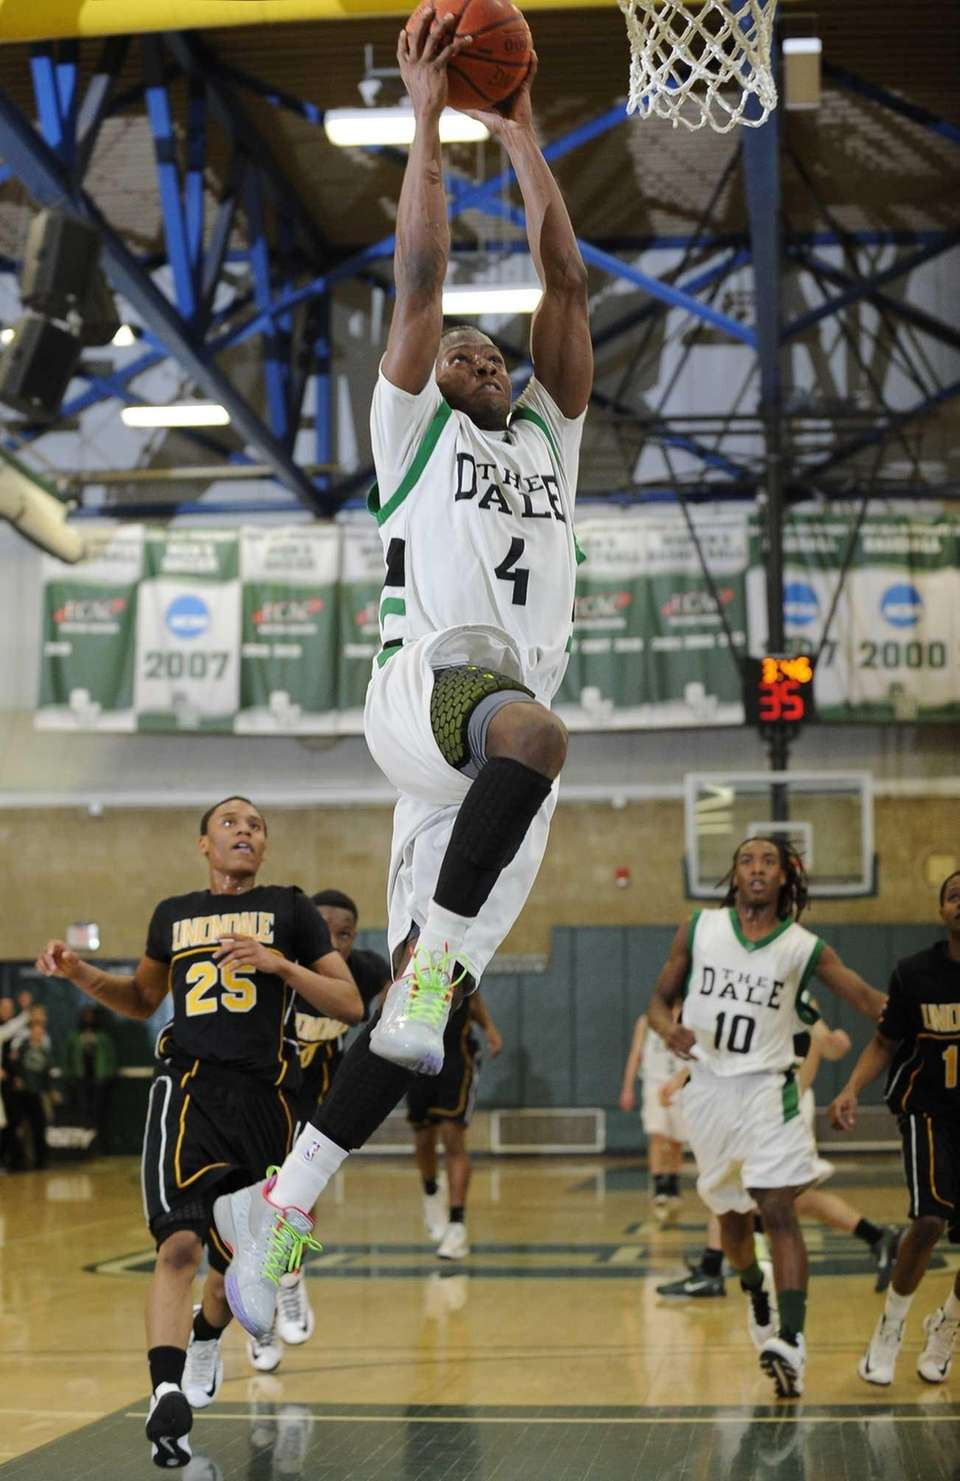 Farmingdale's Dalique Mingo sinks a shot against Uniondale